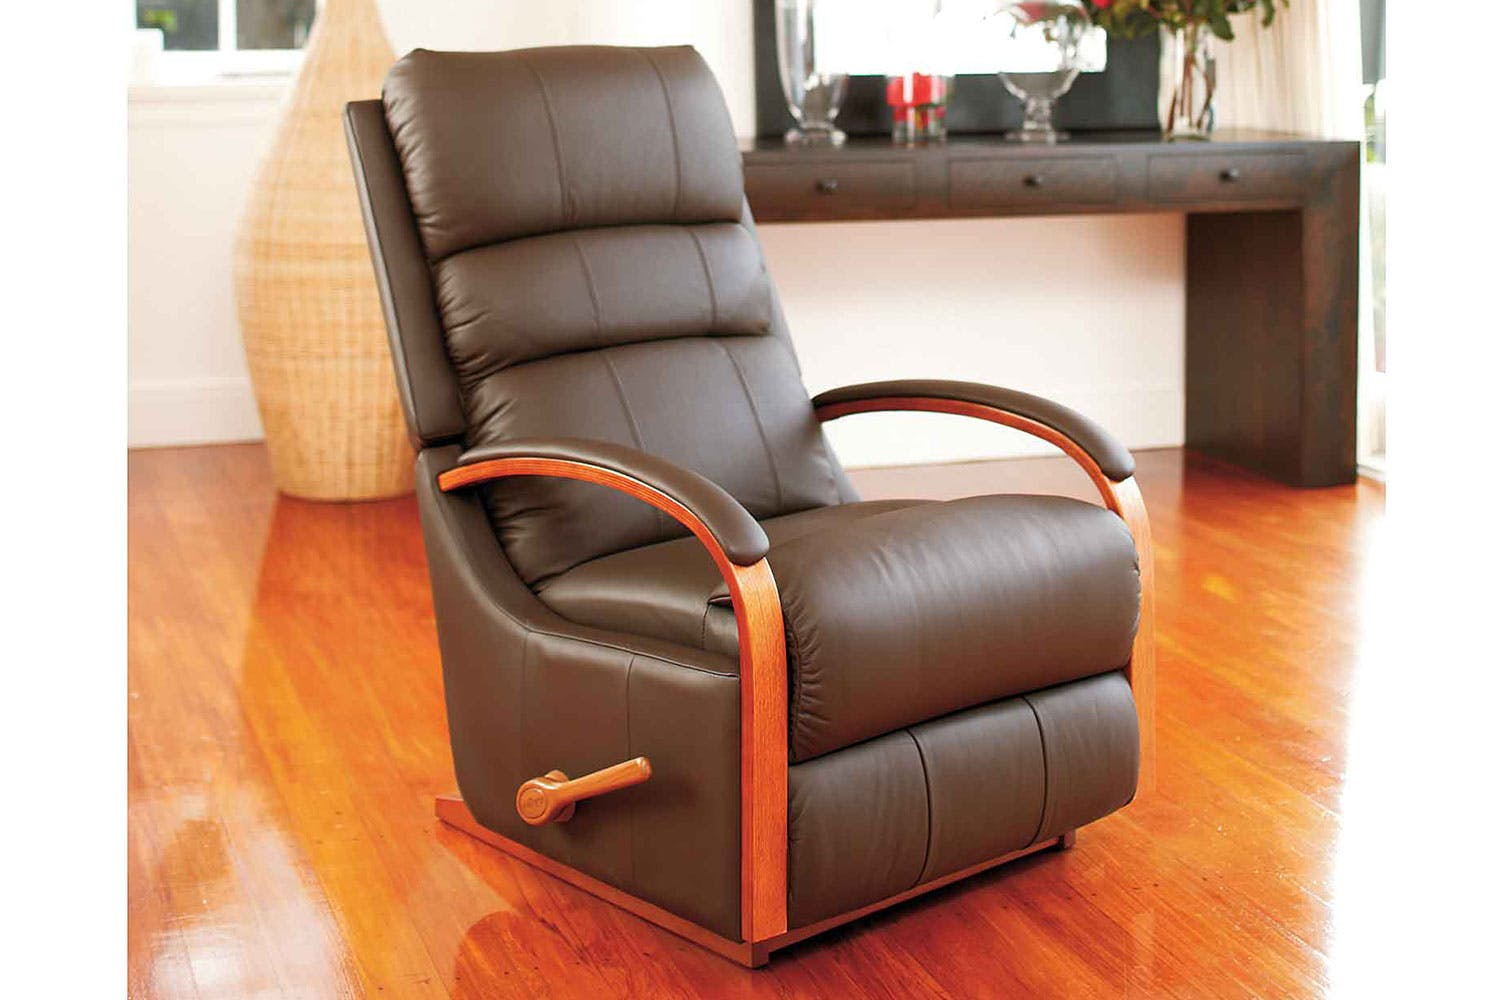 charleston leather recliner chair by la z boy harvey norman new